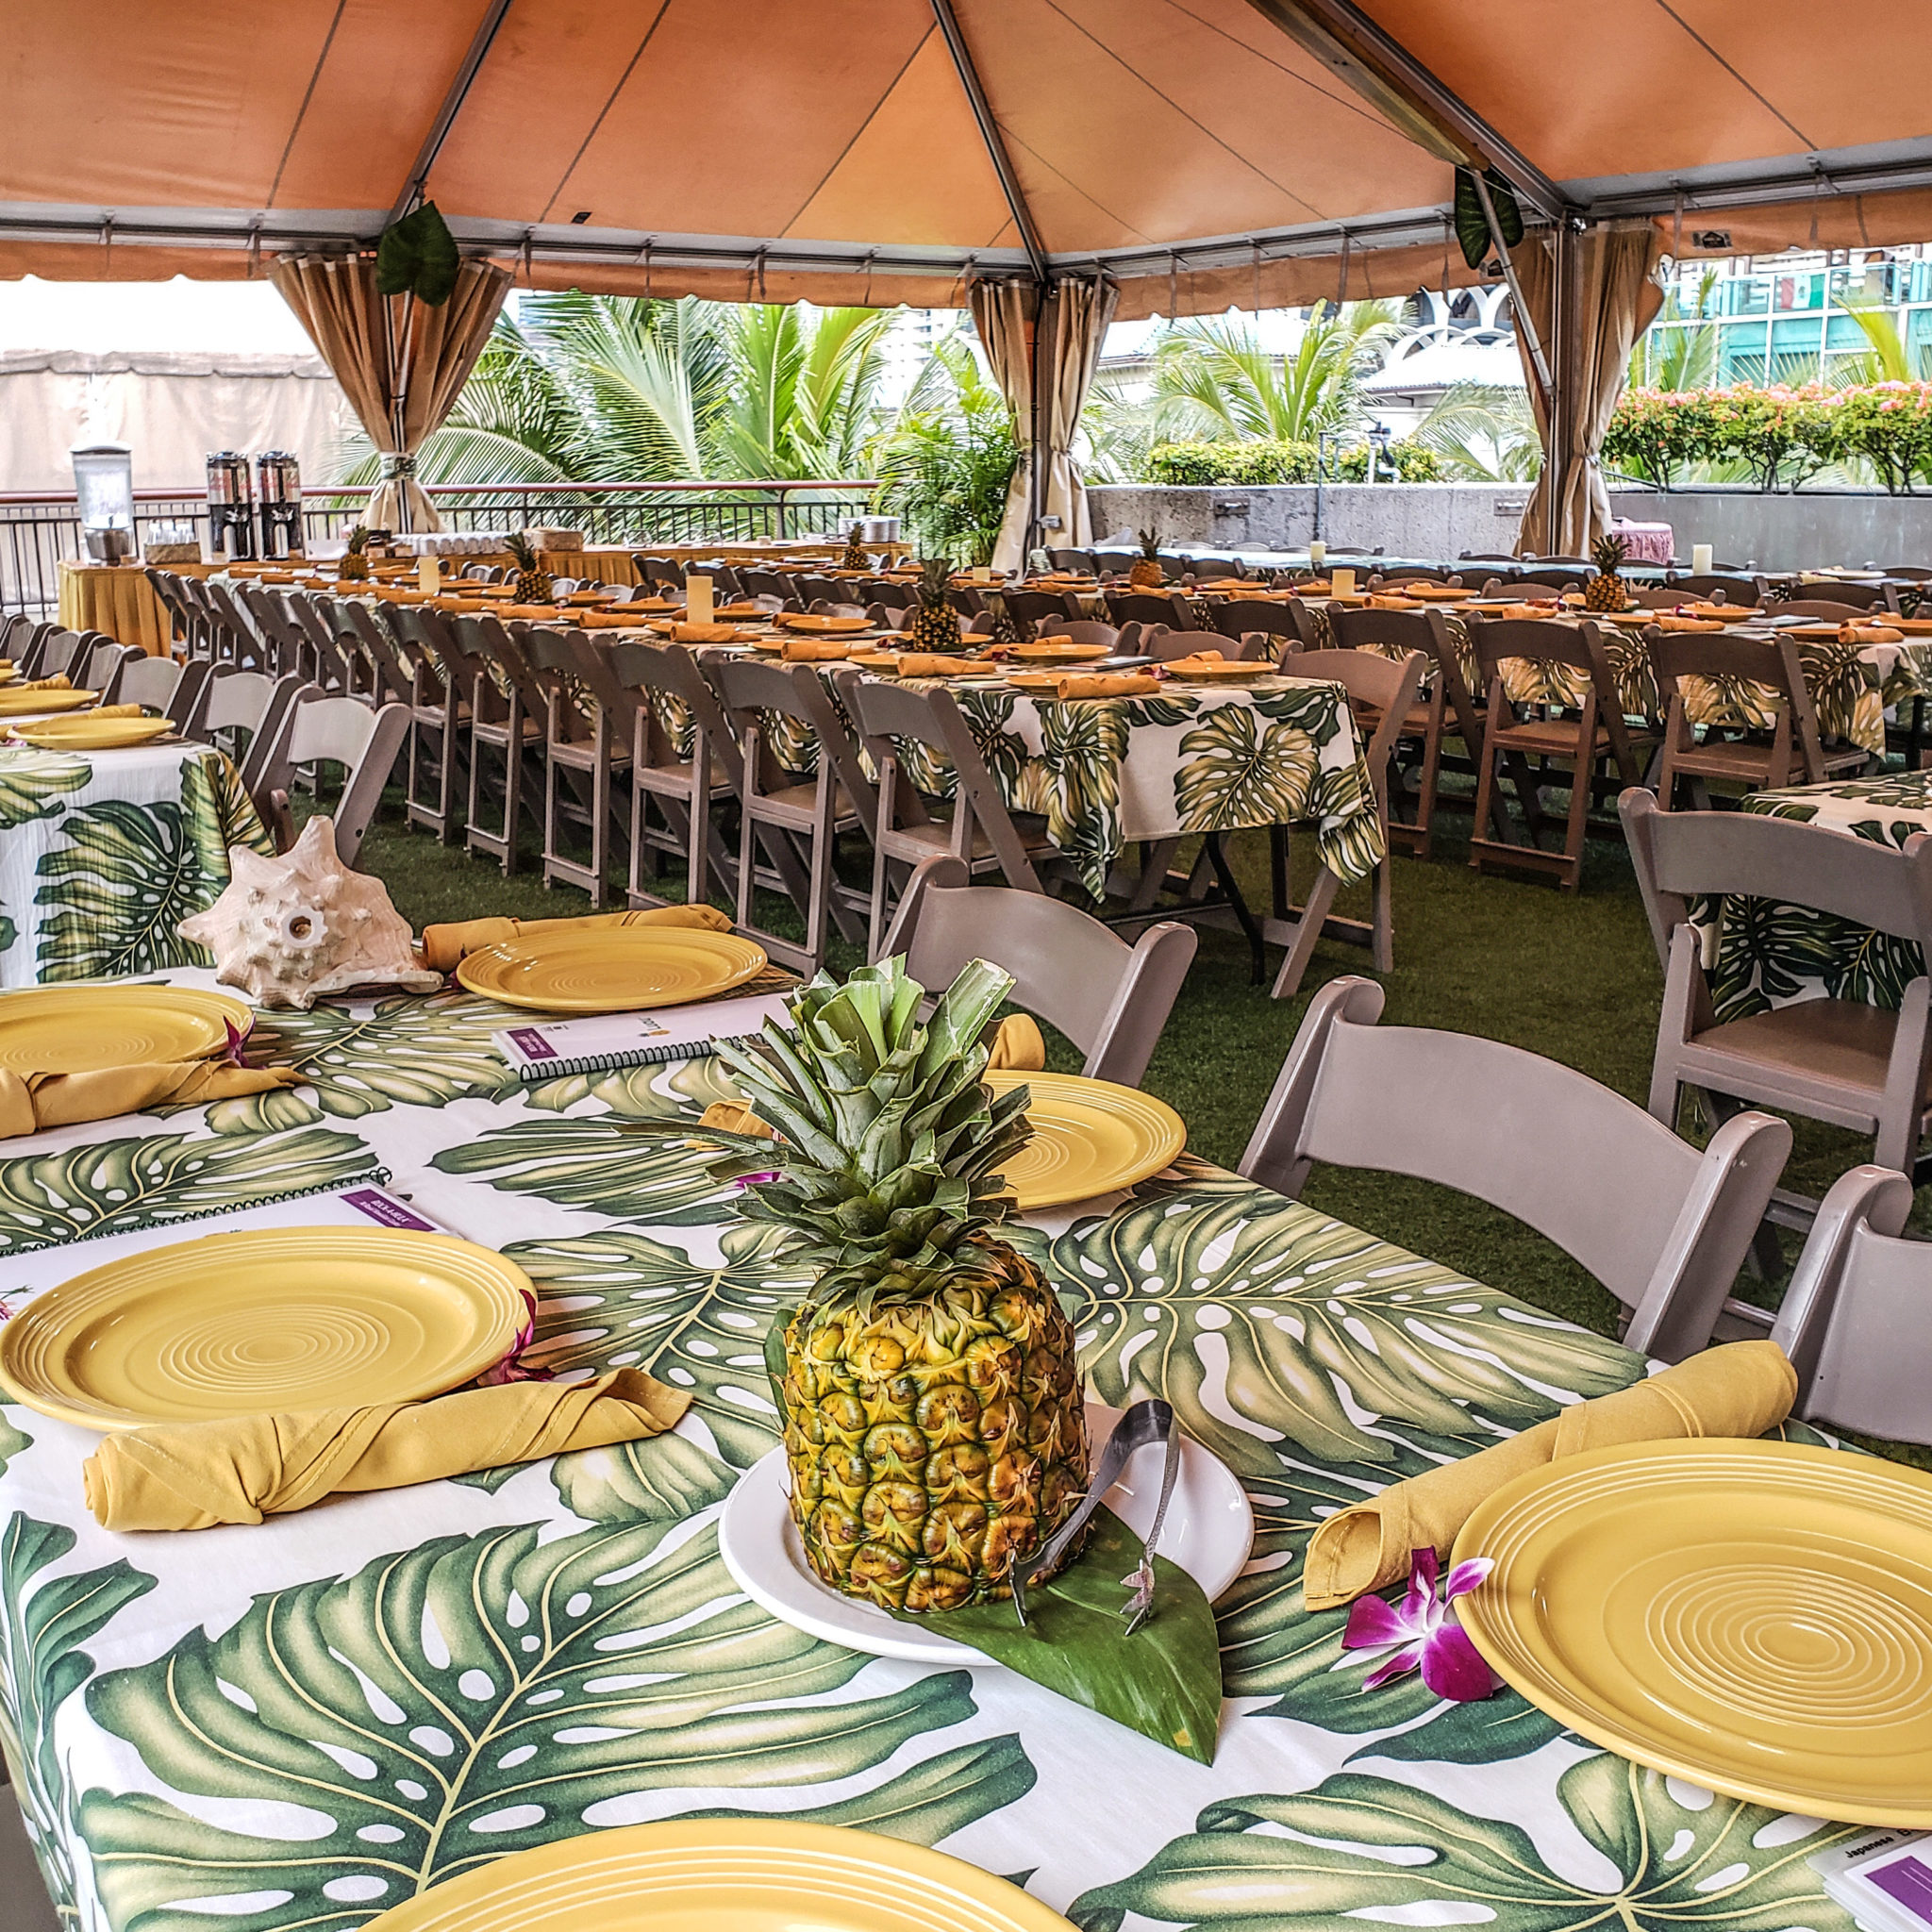 Have a Blast at the Rock-A-Hula Show with the Green Room VIP Dining Experience